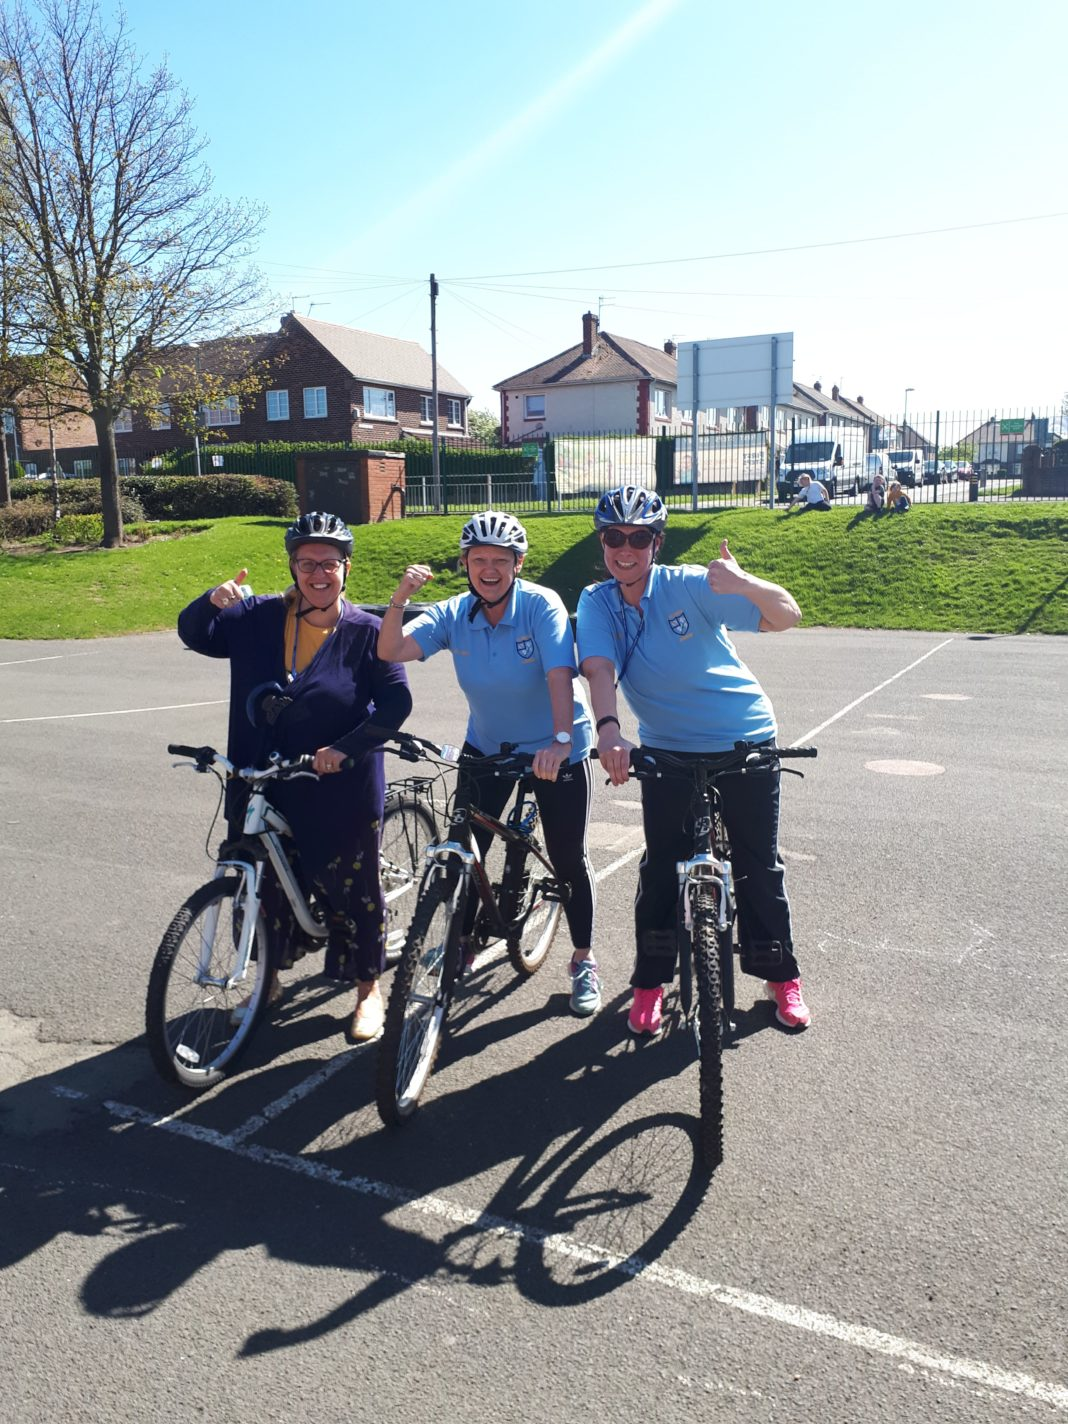 Free Cycling Lessons For Families In South Tyneside And Sunderland!